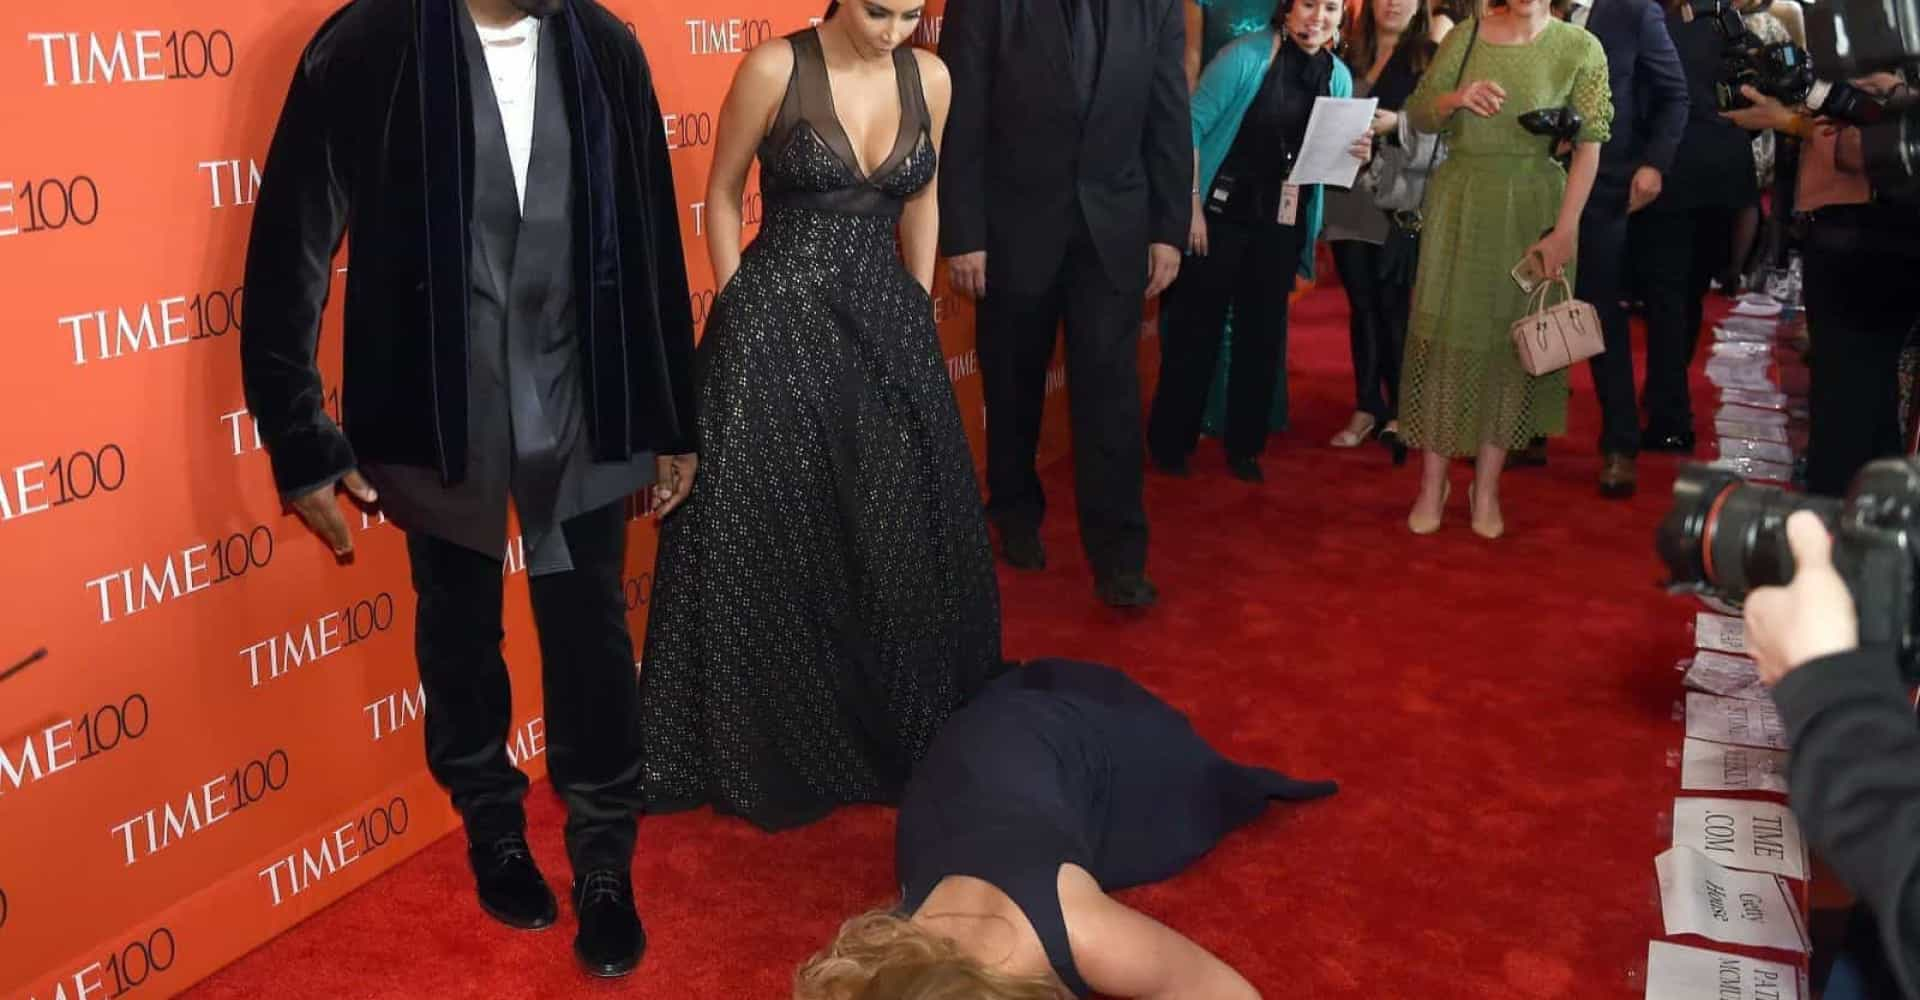 Carpet U2 Funny Celebrity Moments Pranksters On The Red Carpet